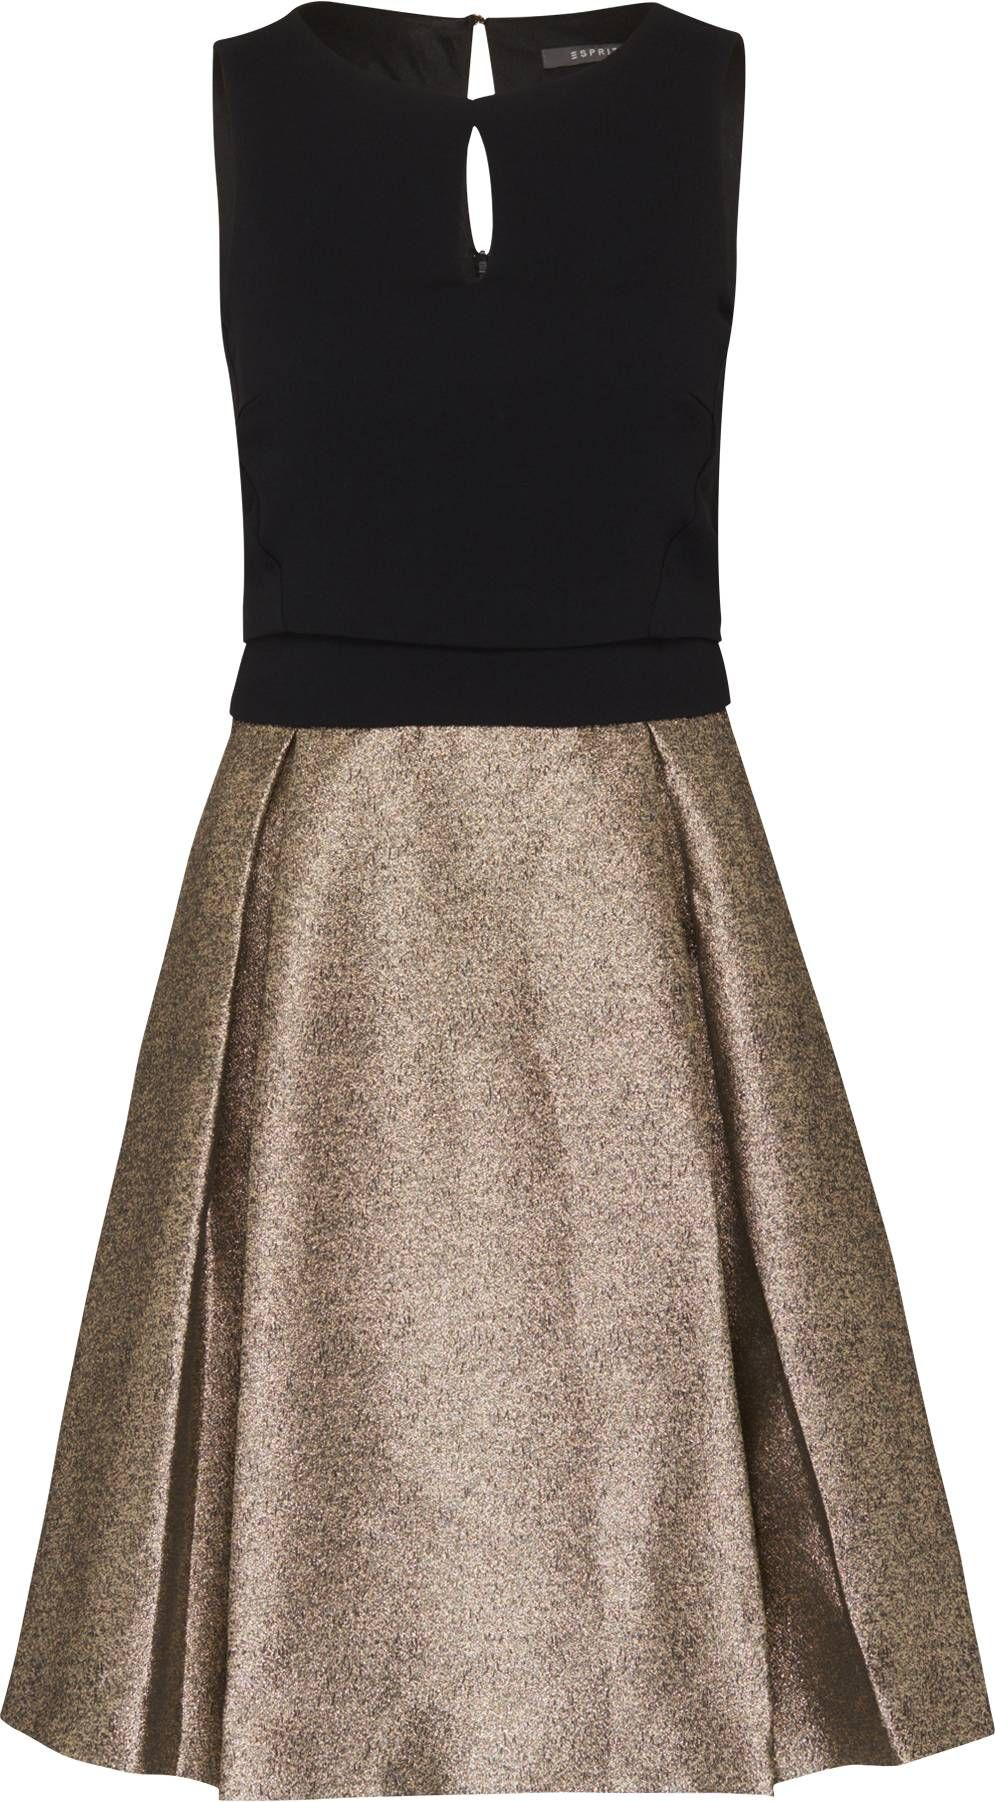 Kleid mit Glitzereffekt   Fashion   Pinterest   Silvester outfit ... c61ecf4124